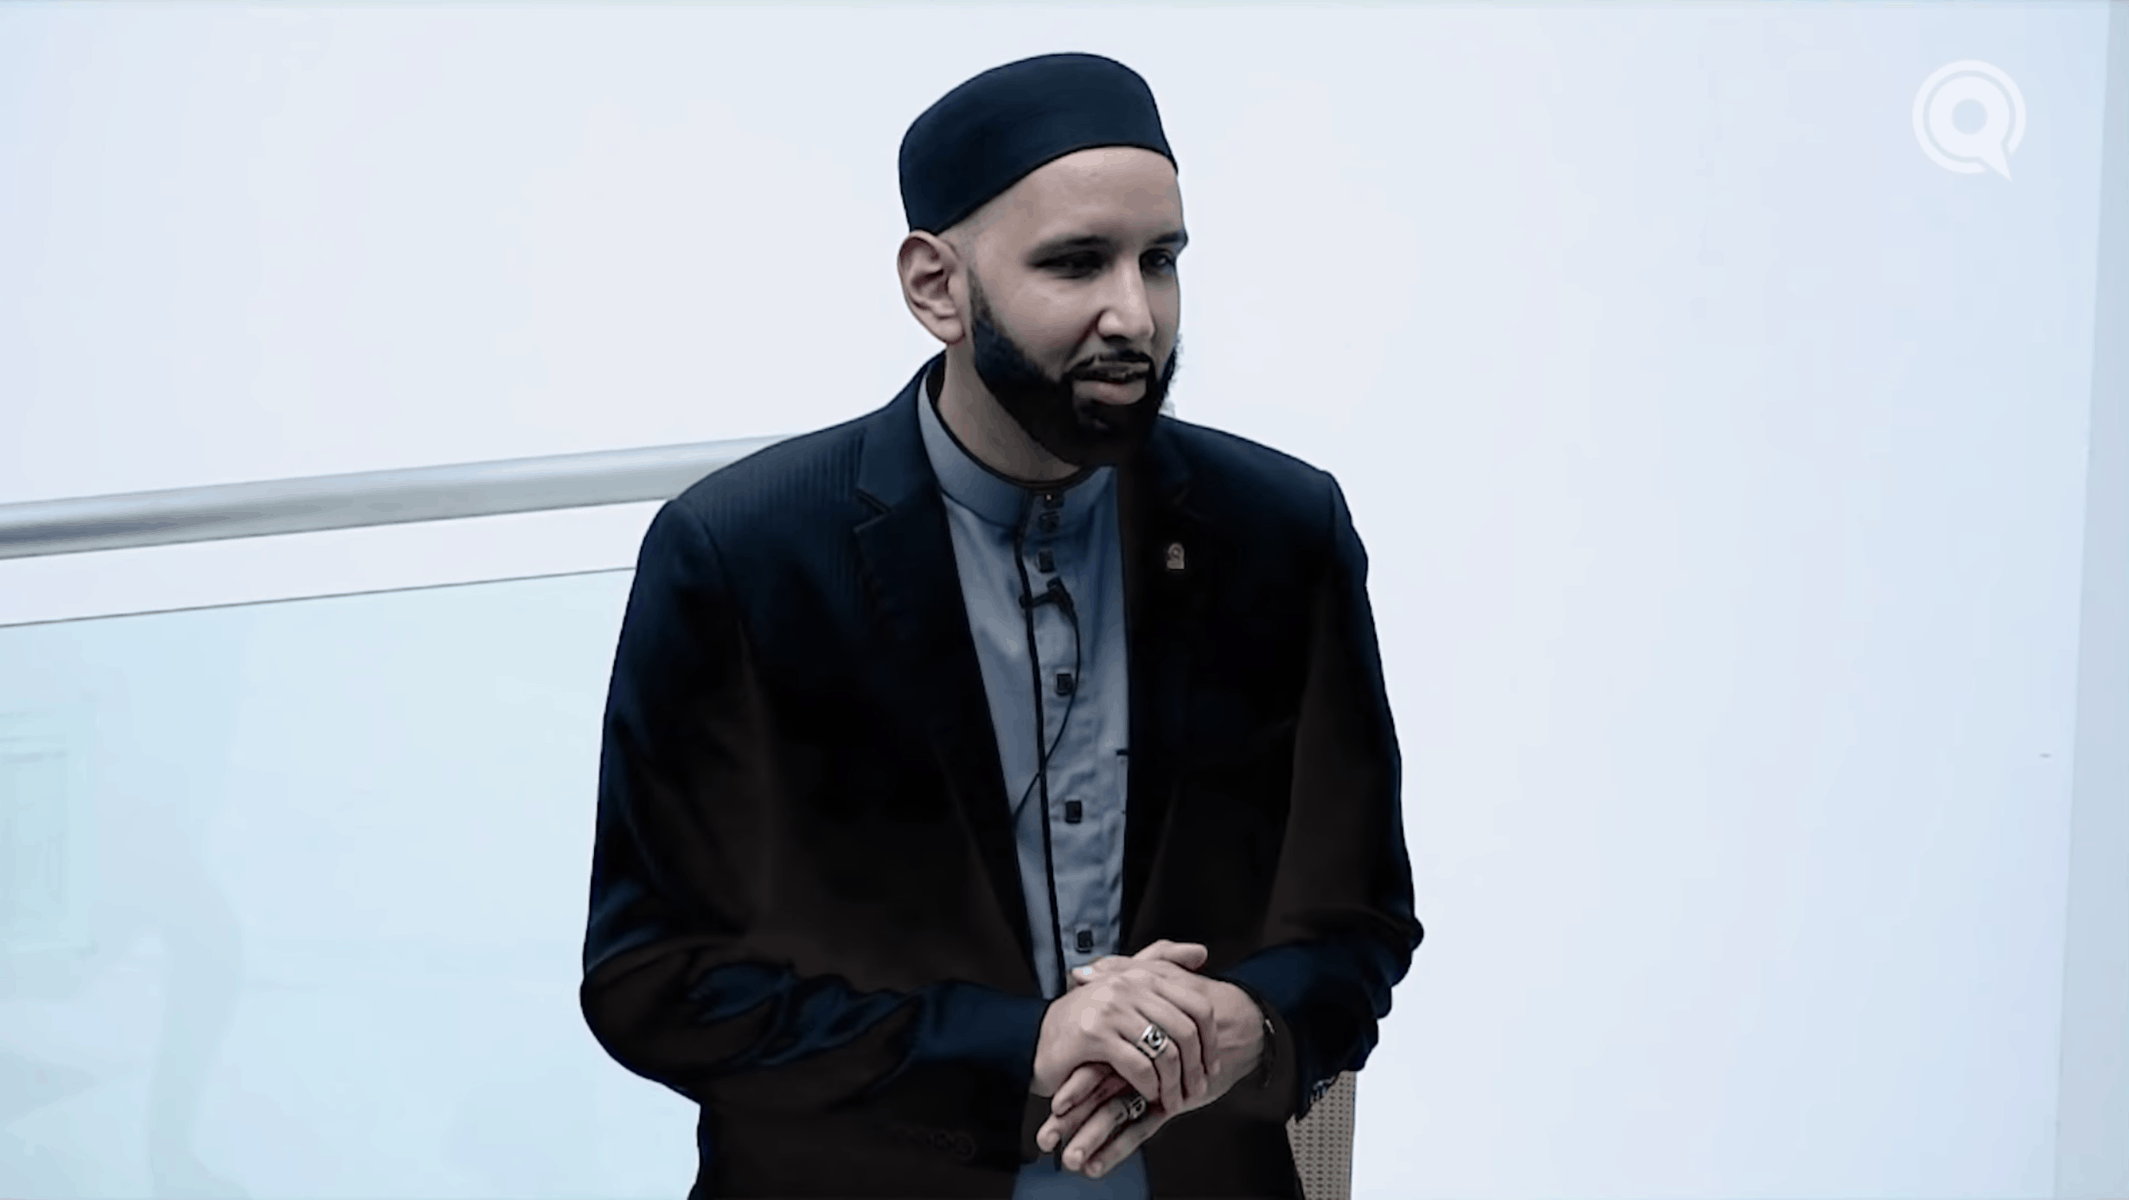 Omar Suleiman – Speaking a Word of Truth to a Tyrant